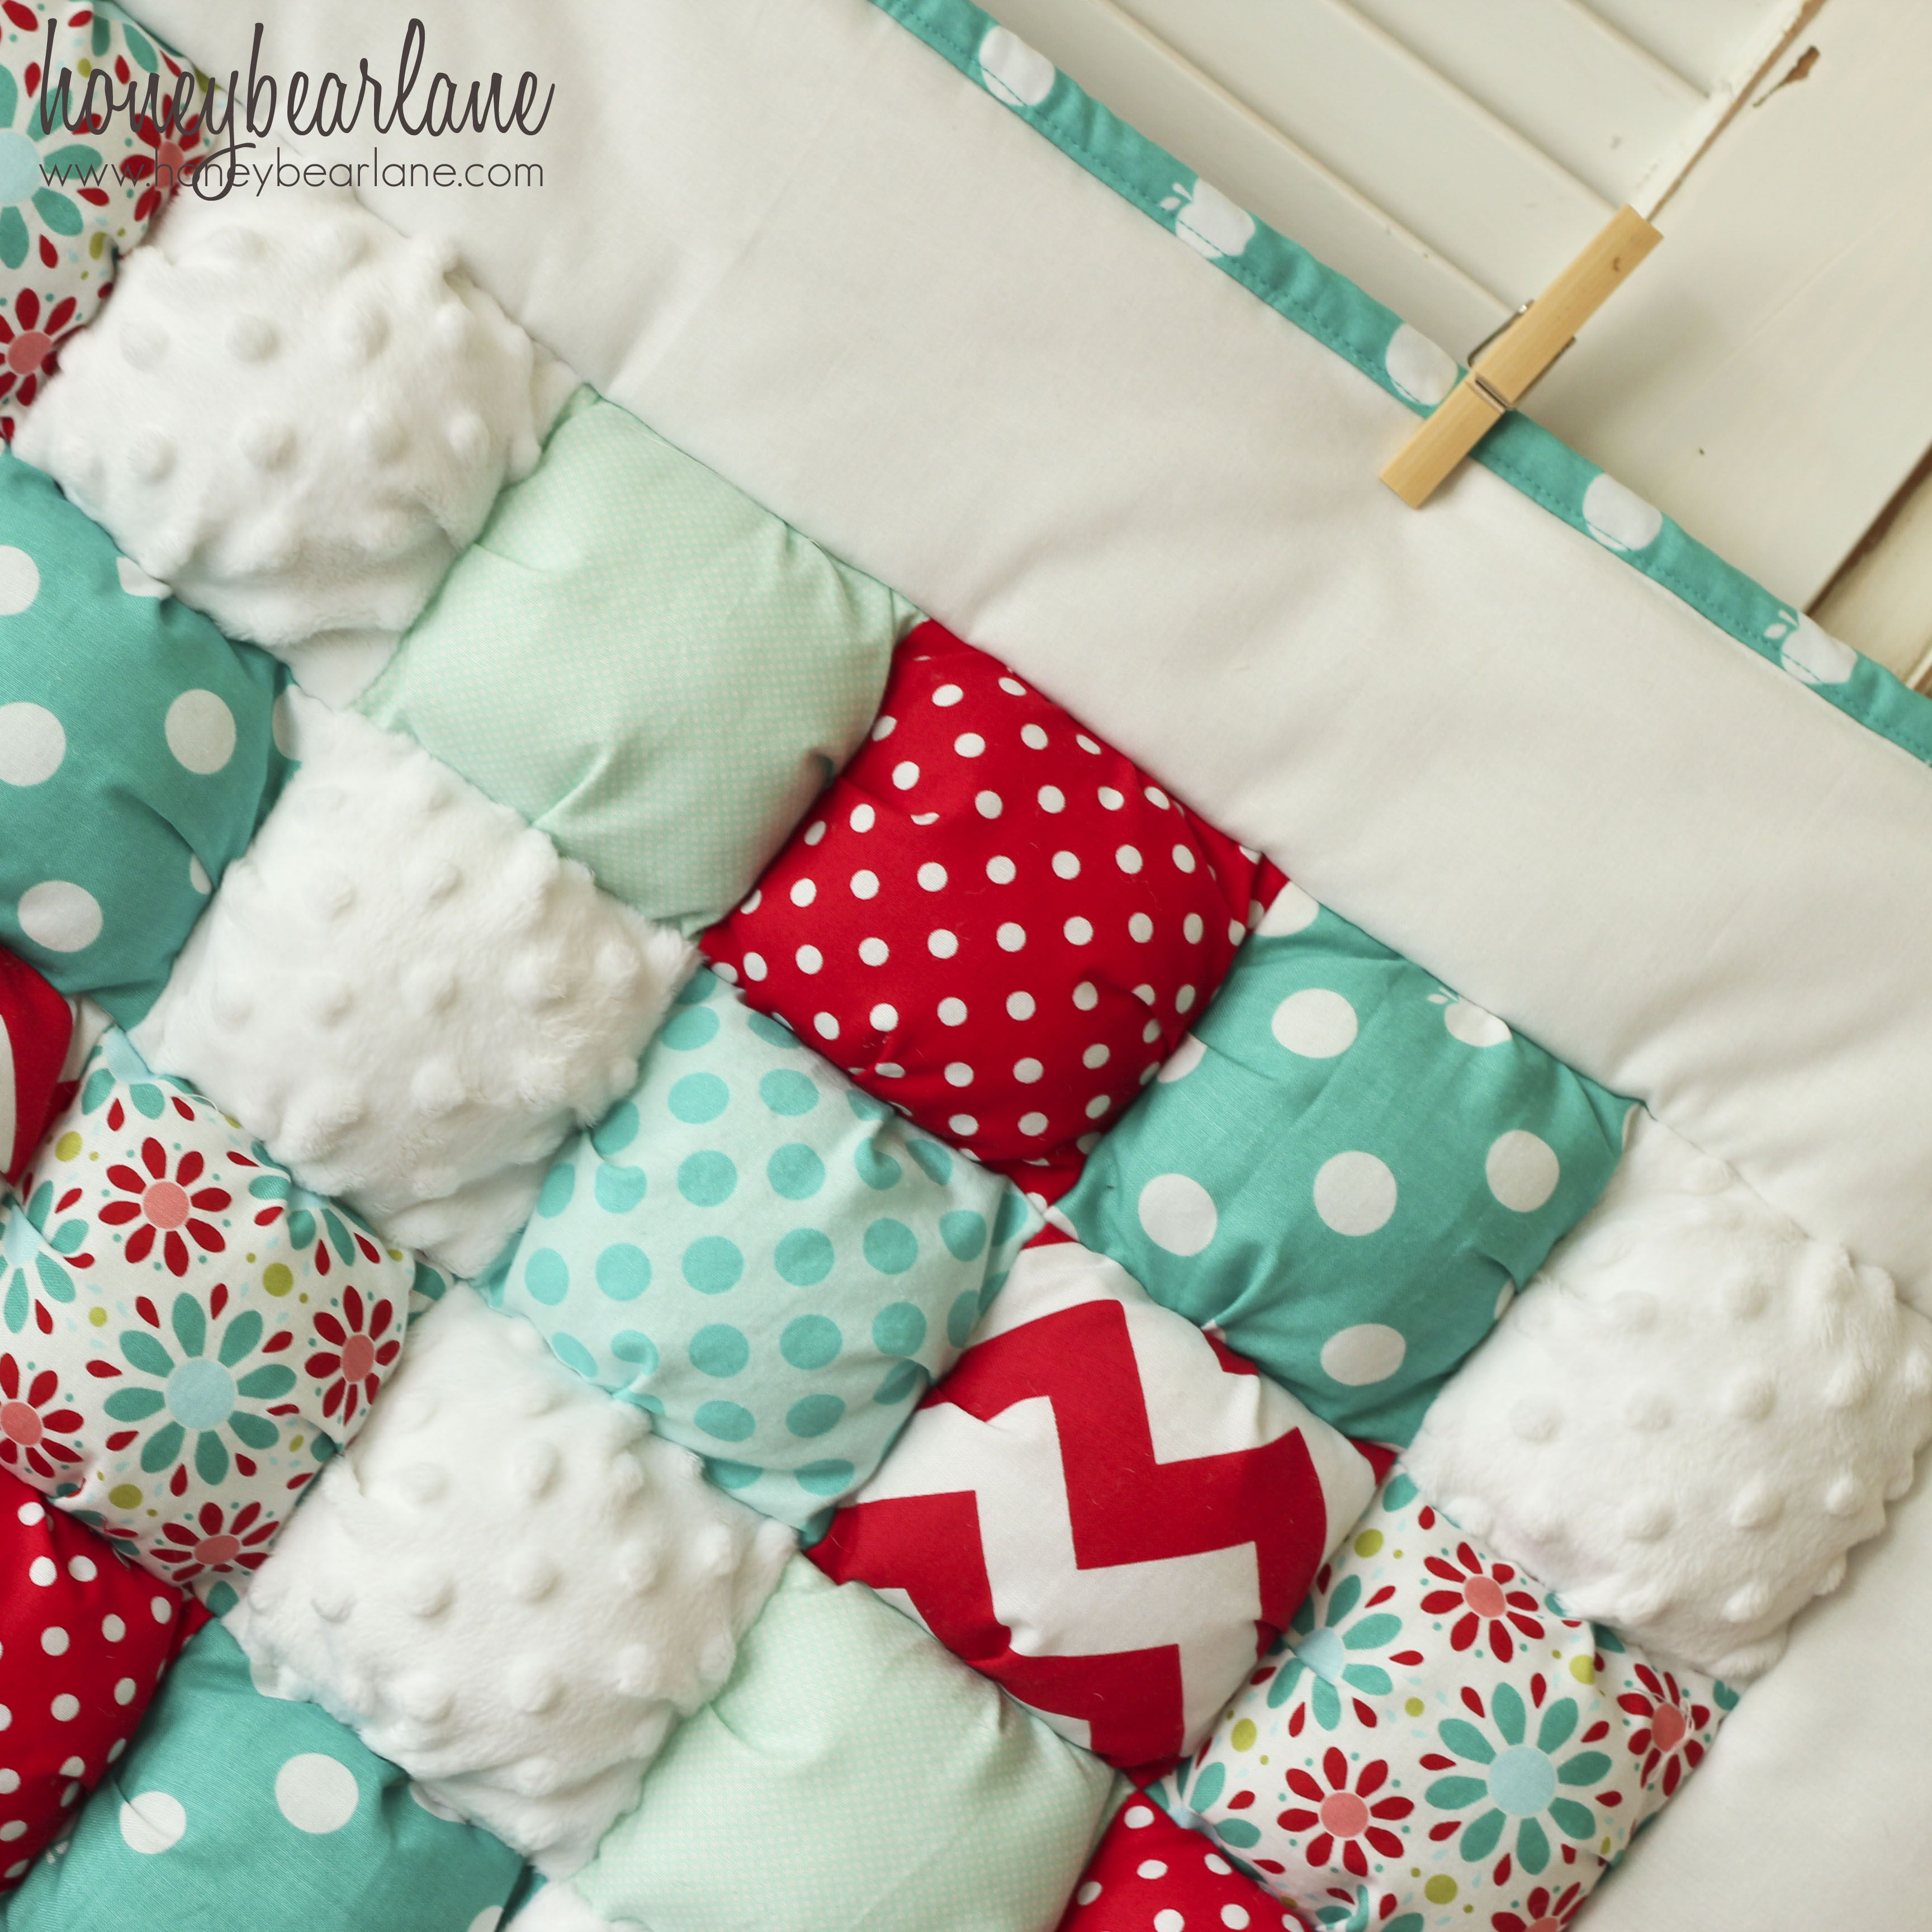 Puff Quilts | Puff quilt, Rag quilt and Pdf : baby puff quilt - Adamdwight.com